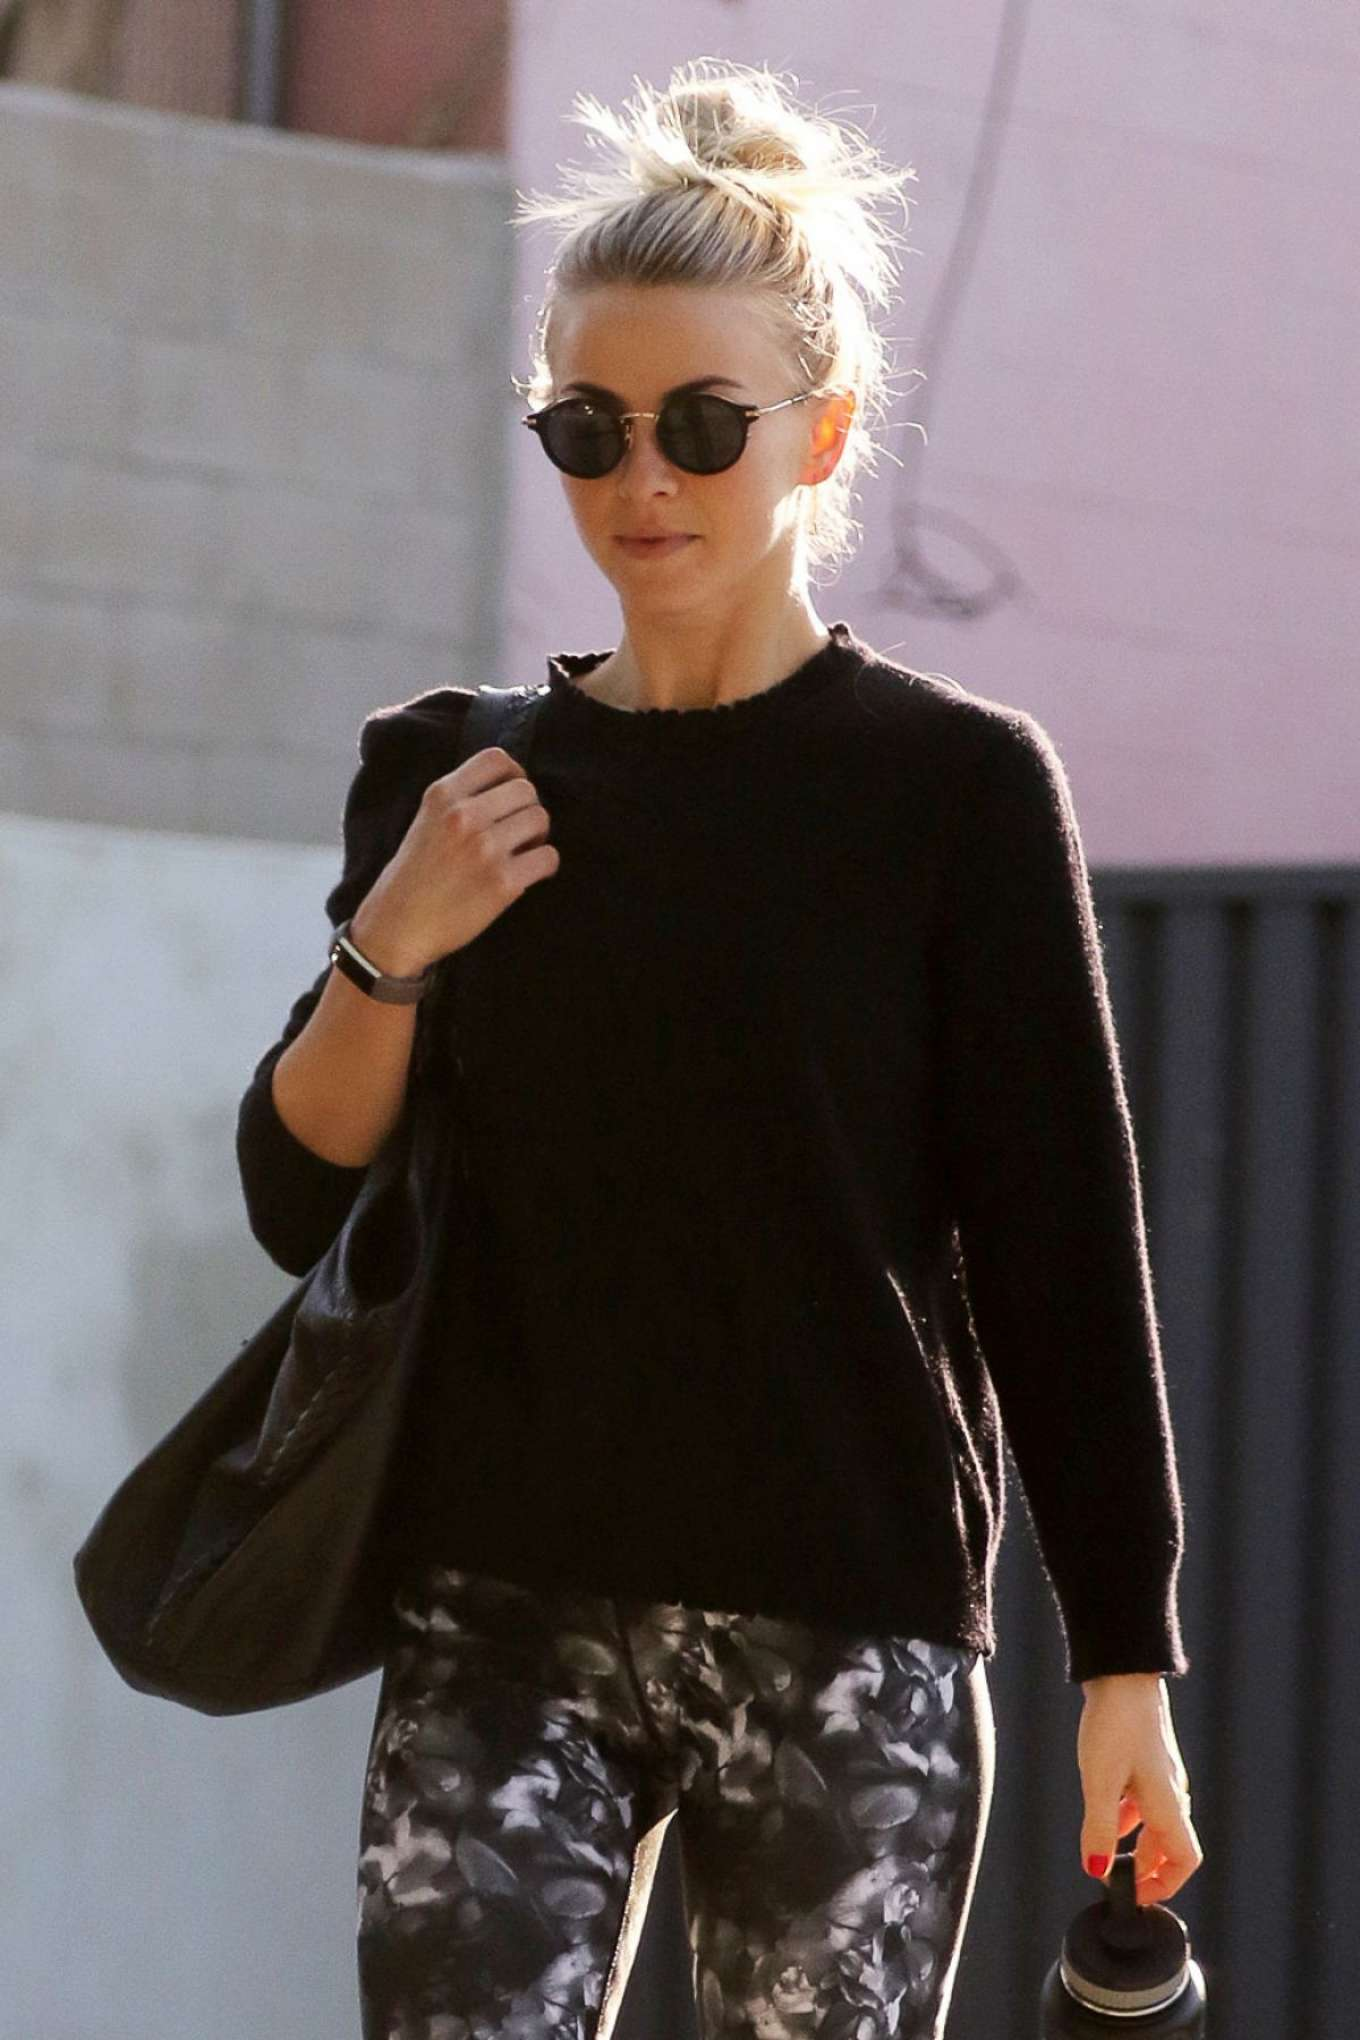 Julianne Hough in Leggings Out in West Hollywood